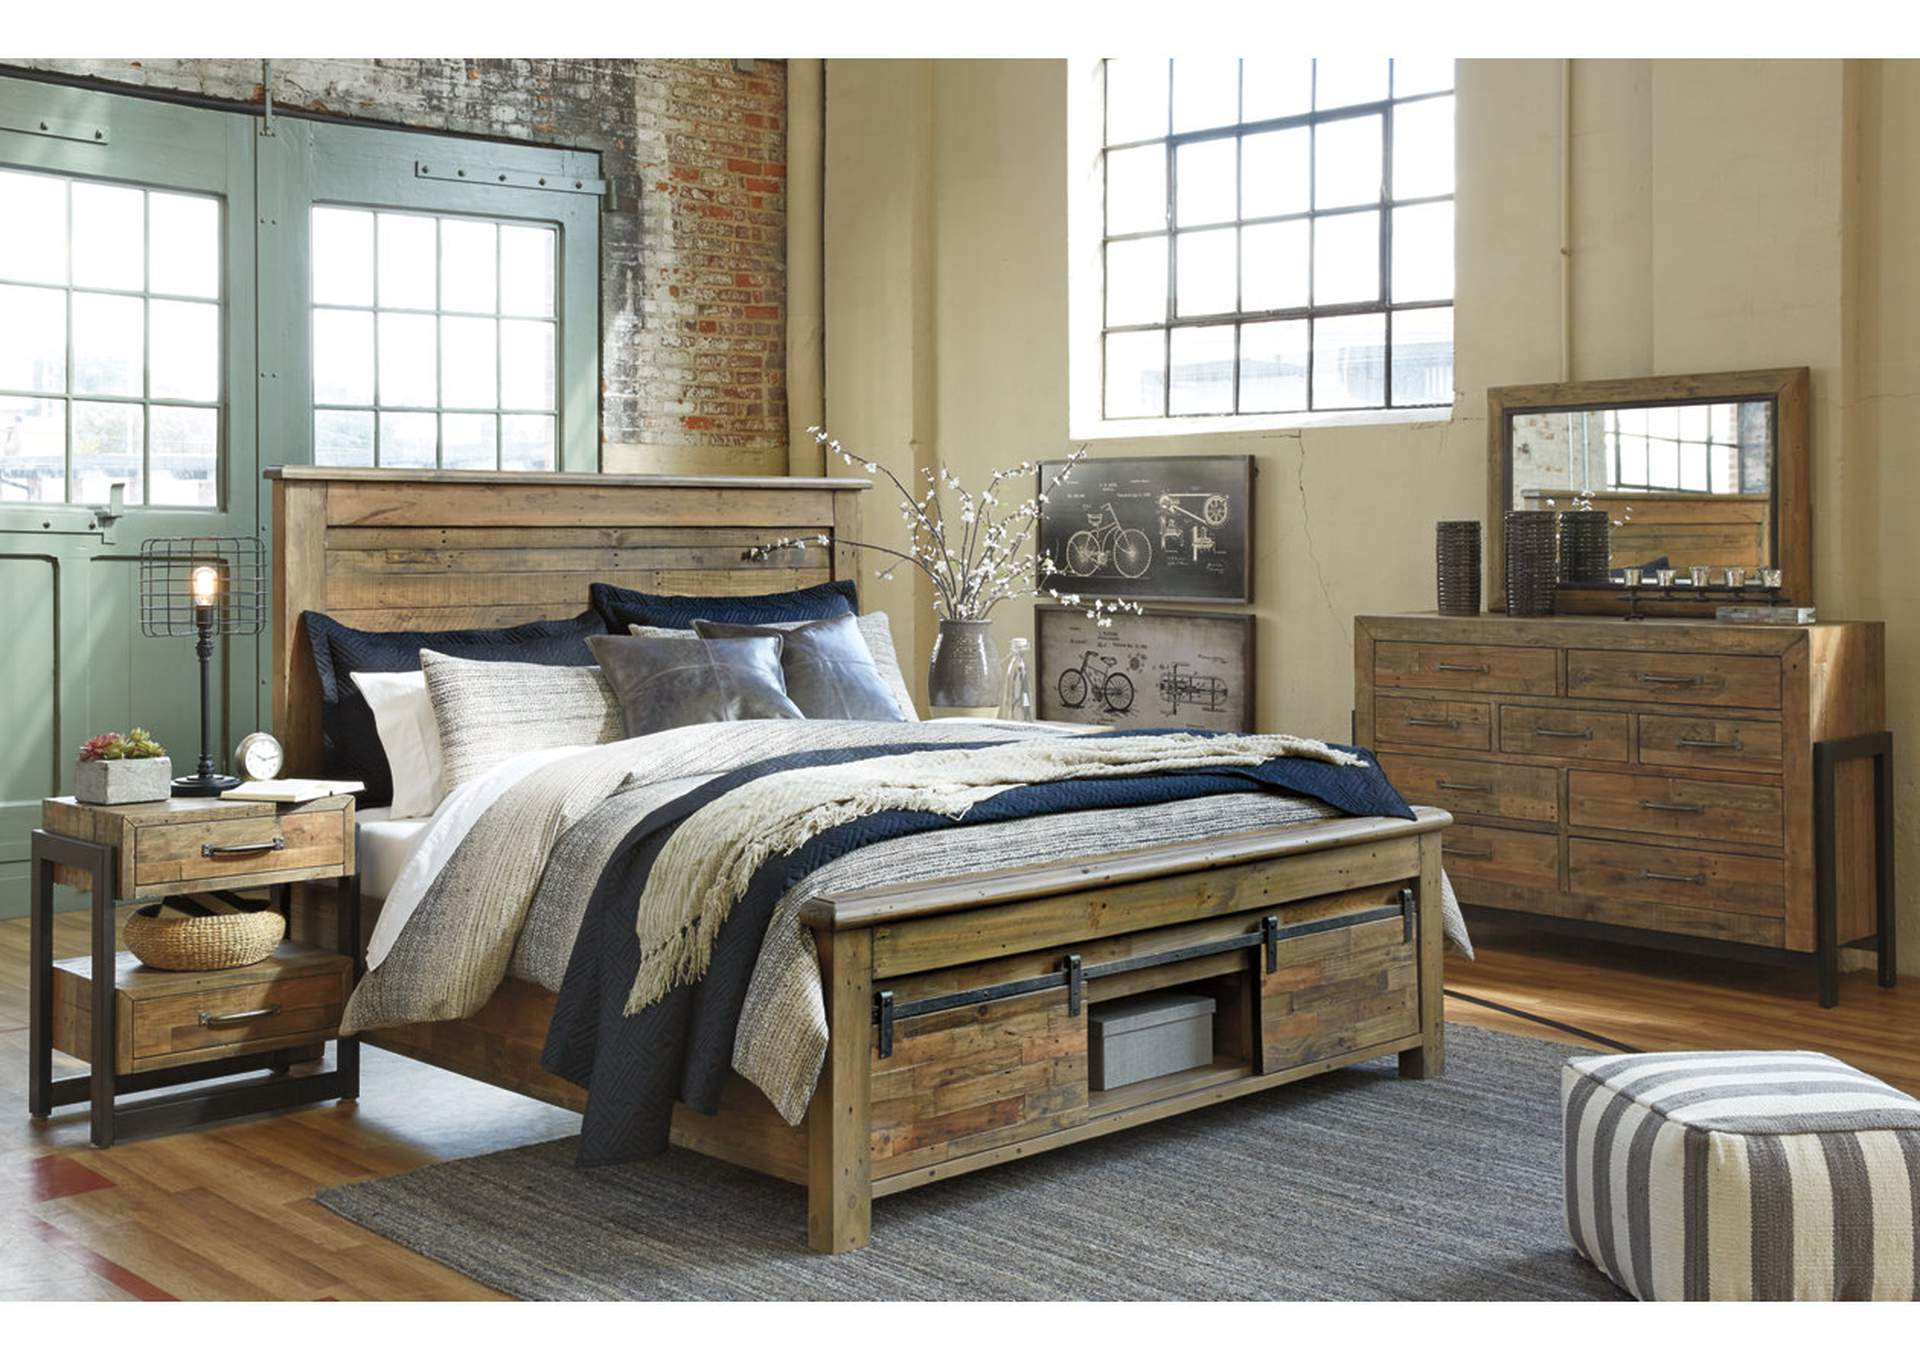 Sommerford Brown California King Storage Bed w/Dresser, Mirror, Drawer Chest & Nightstand,Signature Design By Ashley